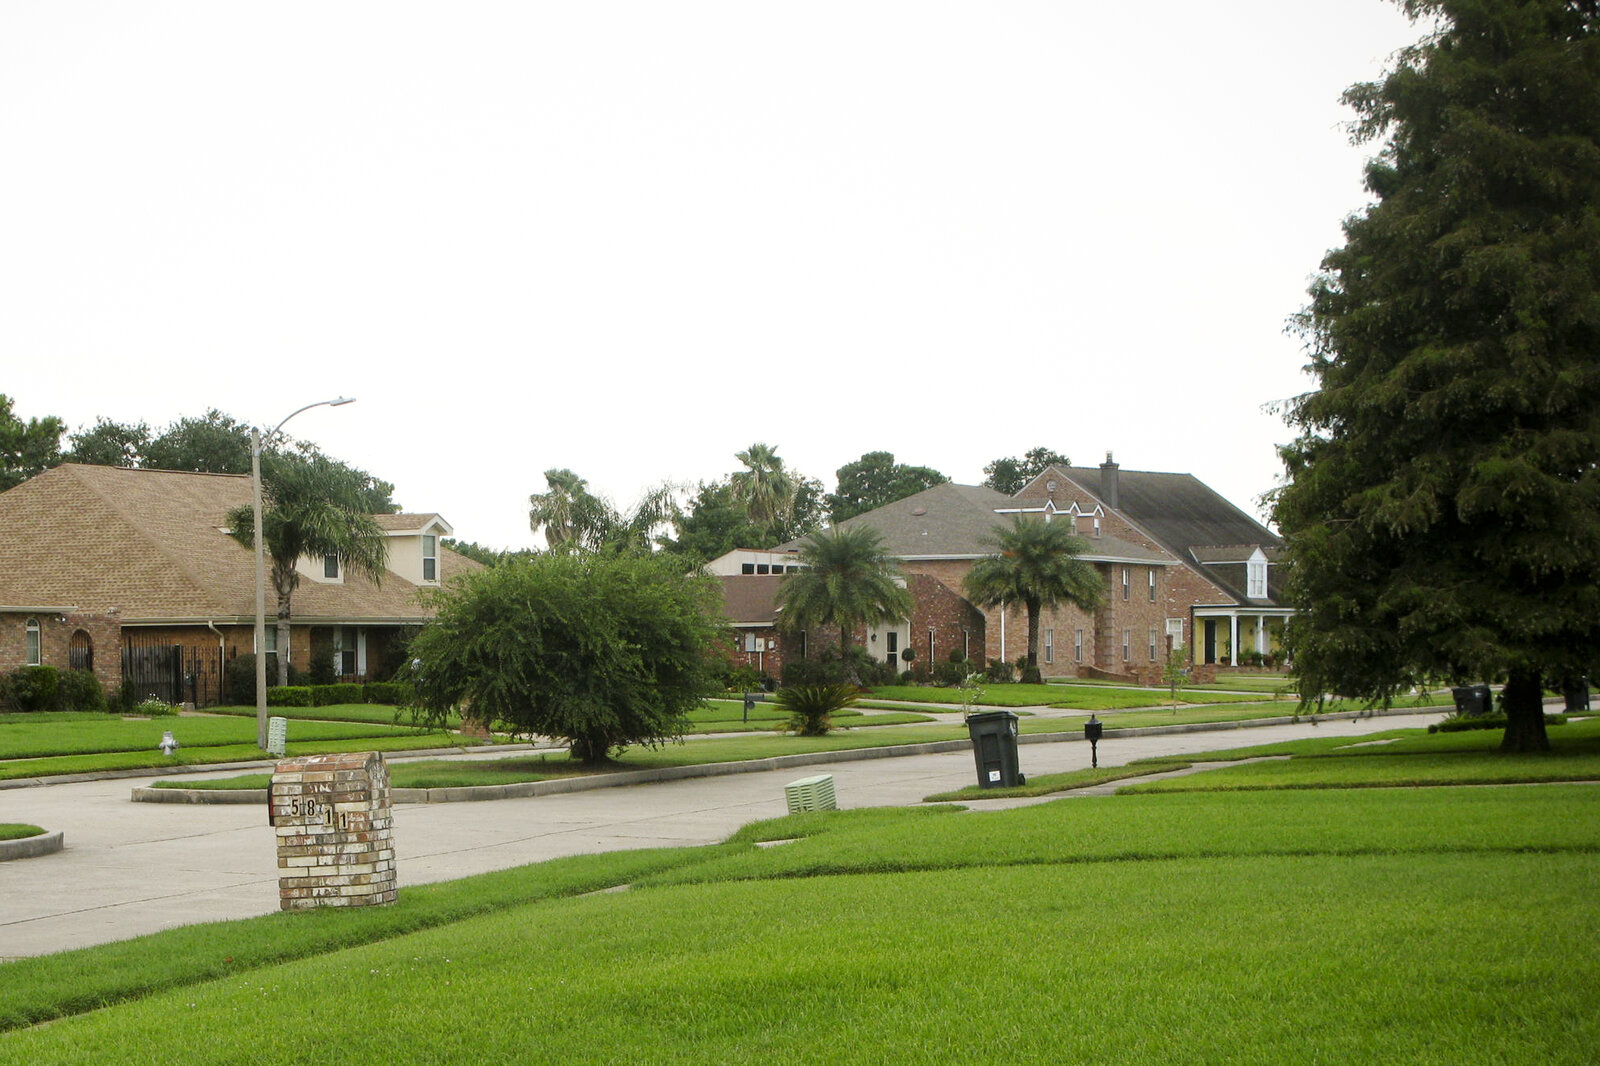 Large homes and lush lawns are common in Lake Forest Estates, a subdivision in New Orleans East. After Katrina, 6-foot-deep flood waters devastated the region.